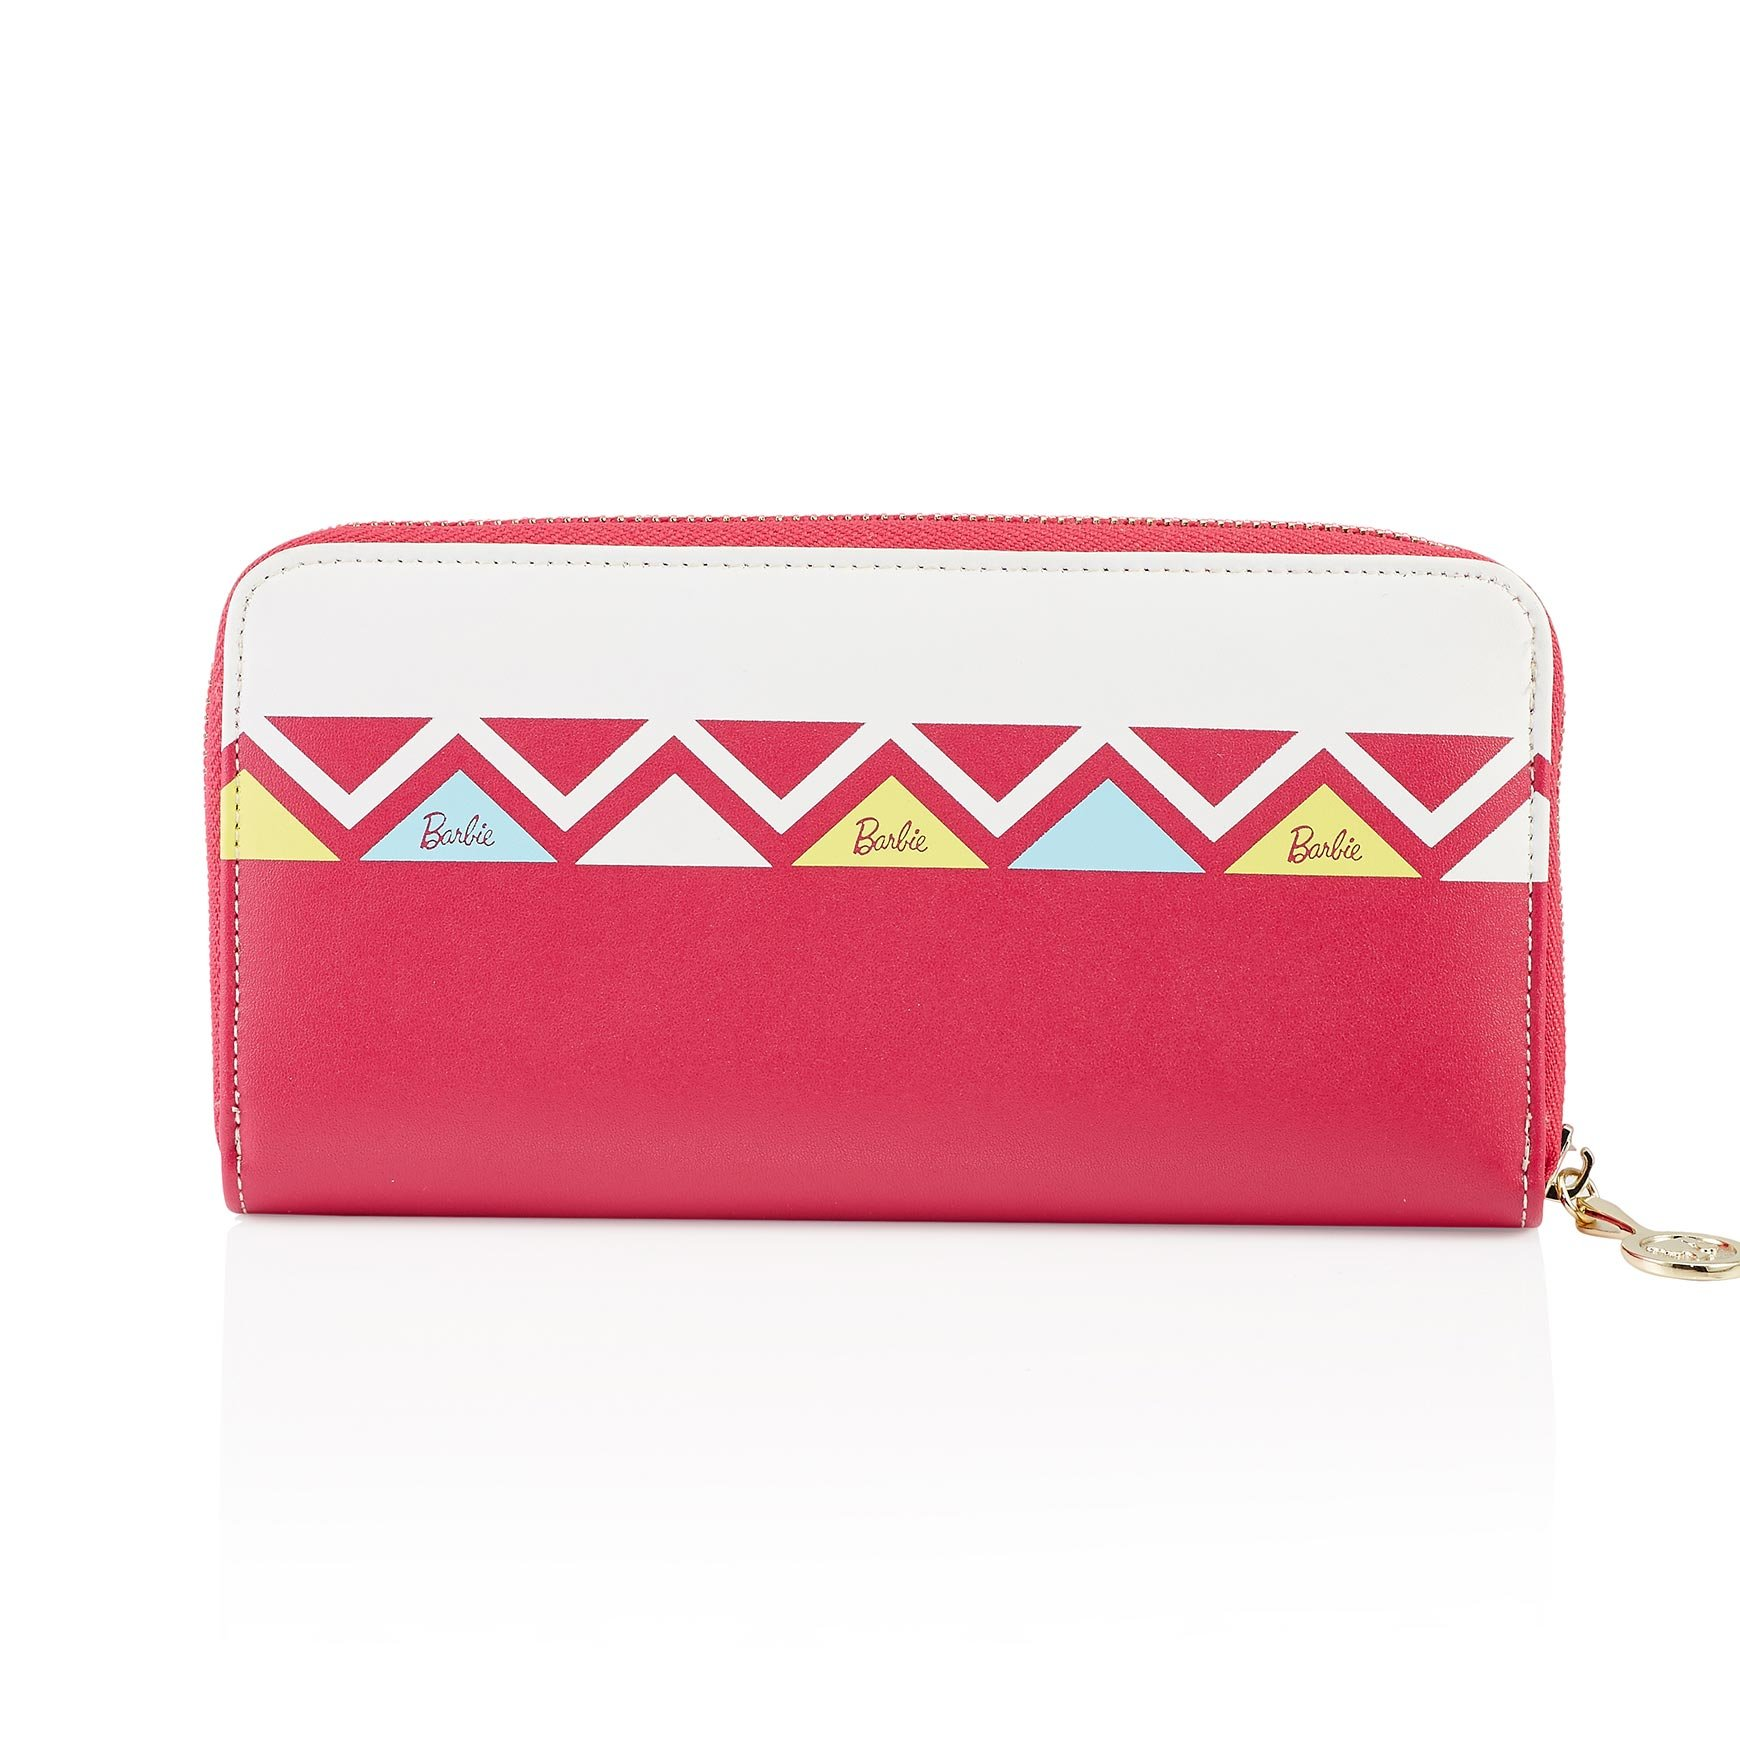 Barbie Modern Series Simple Multicolored Geometric patterns Women Purse #BBPS017 (red)